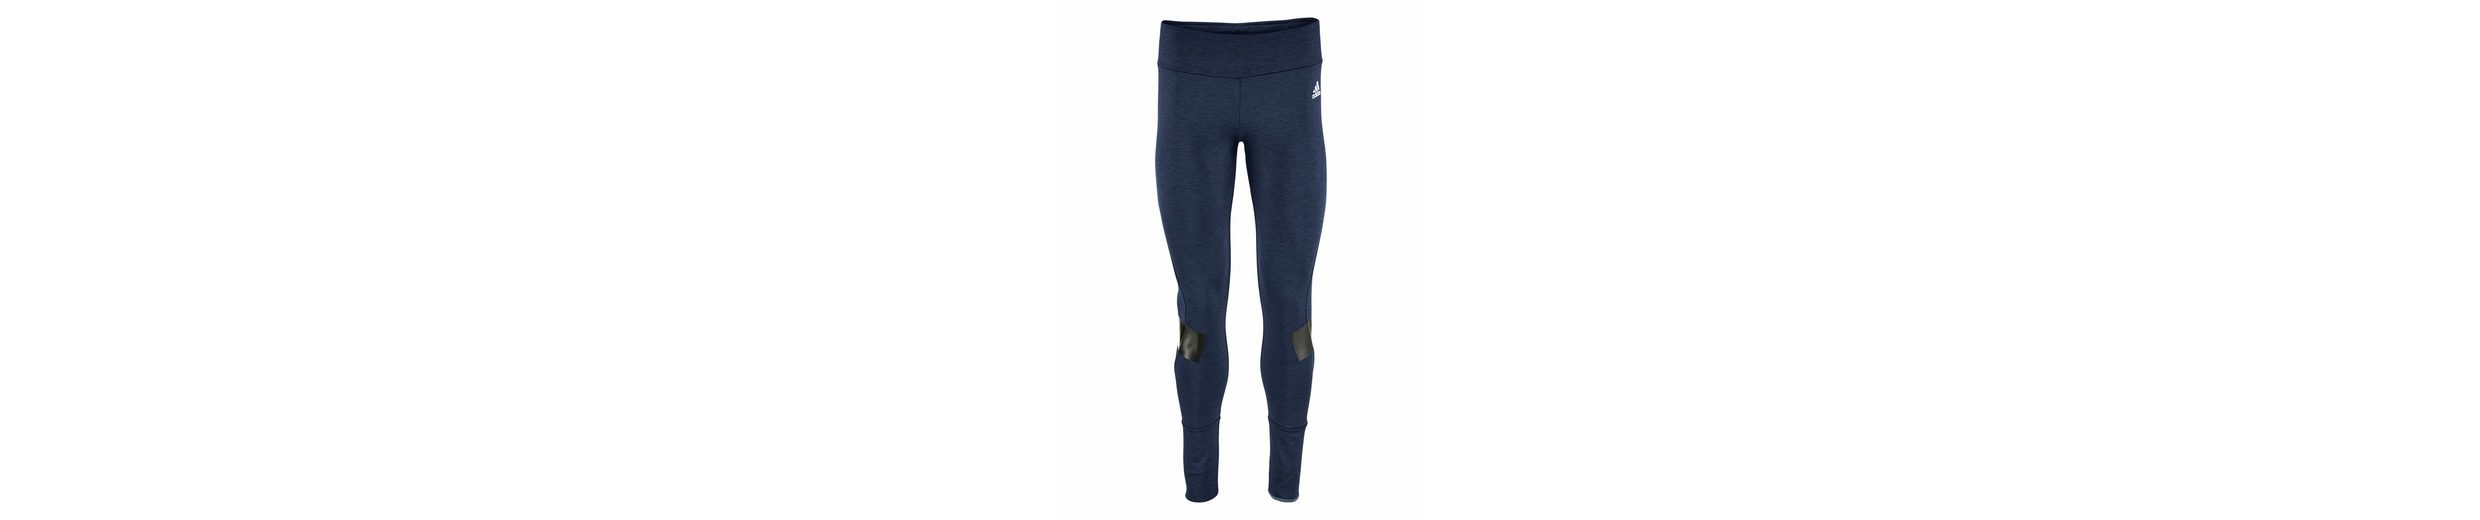 adidas Performance Funktionstights WARMER TIGHT Billig Verkauf Geschäft Outlet Beste Geschäft Zu Bekommen Sehr Günstig Online Verkauf Online-Shop RJOHoSwN